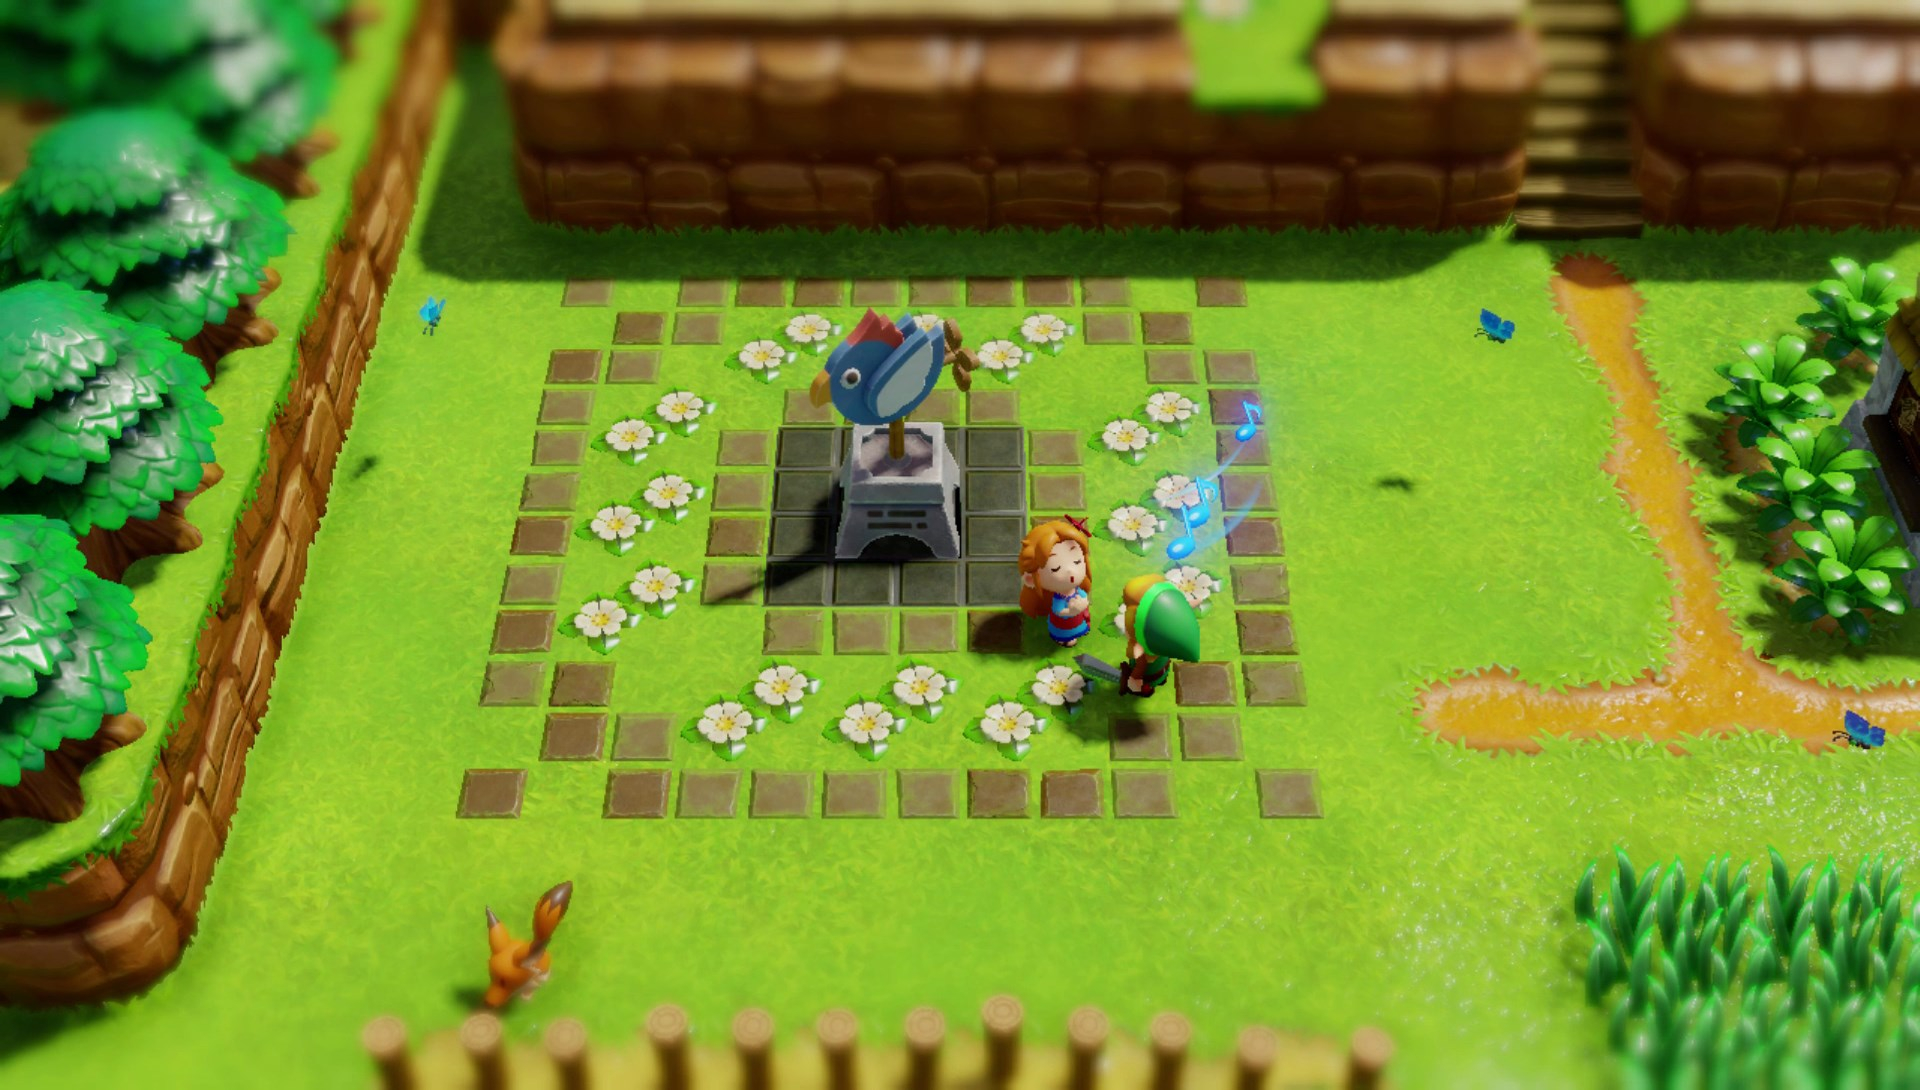 Aonuma Introduced Seamless Transitions Between Screens in Link's Awakening To Create A More Connected World